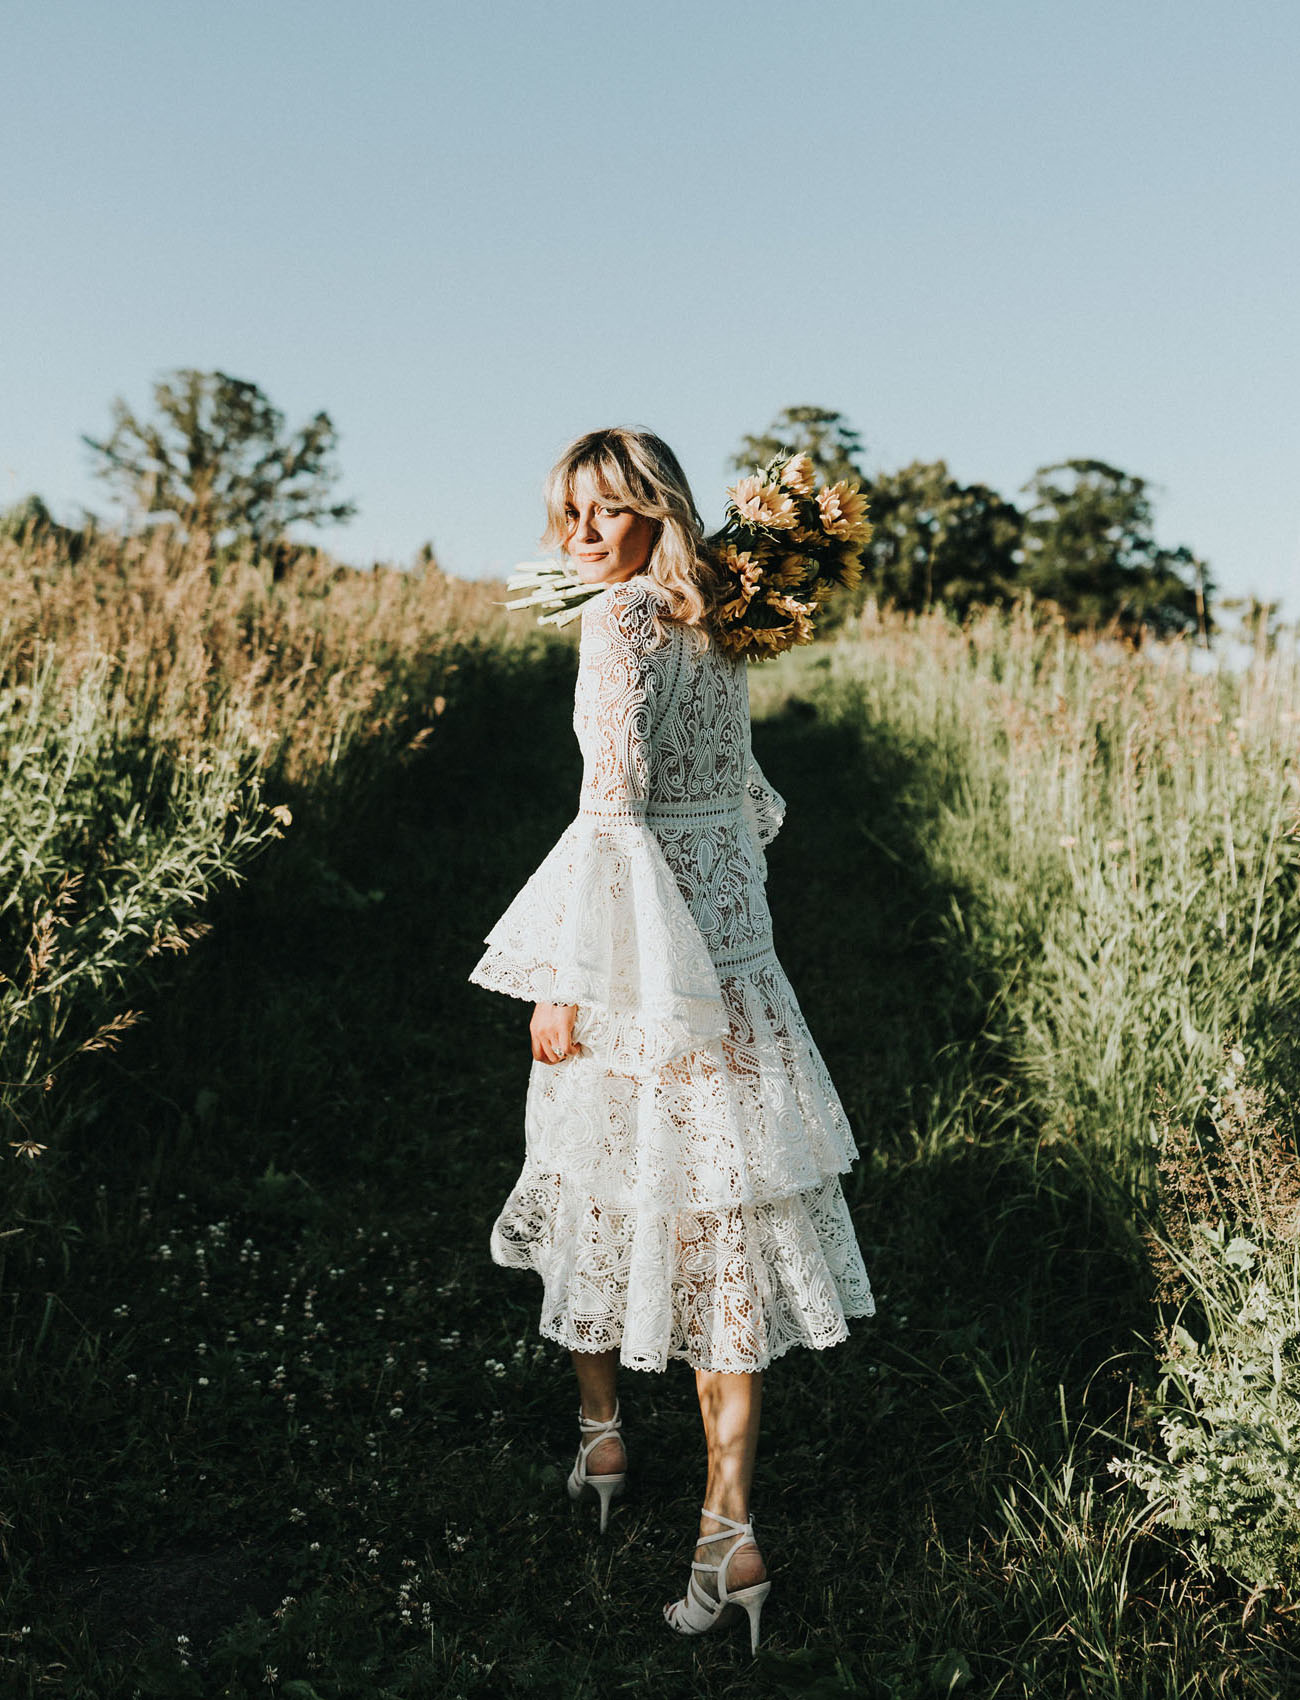 Dreamy Summer Lace Dress Inspiration